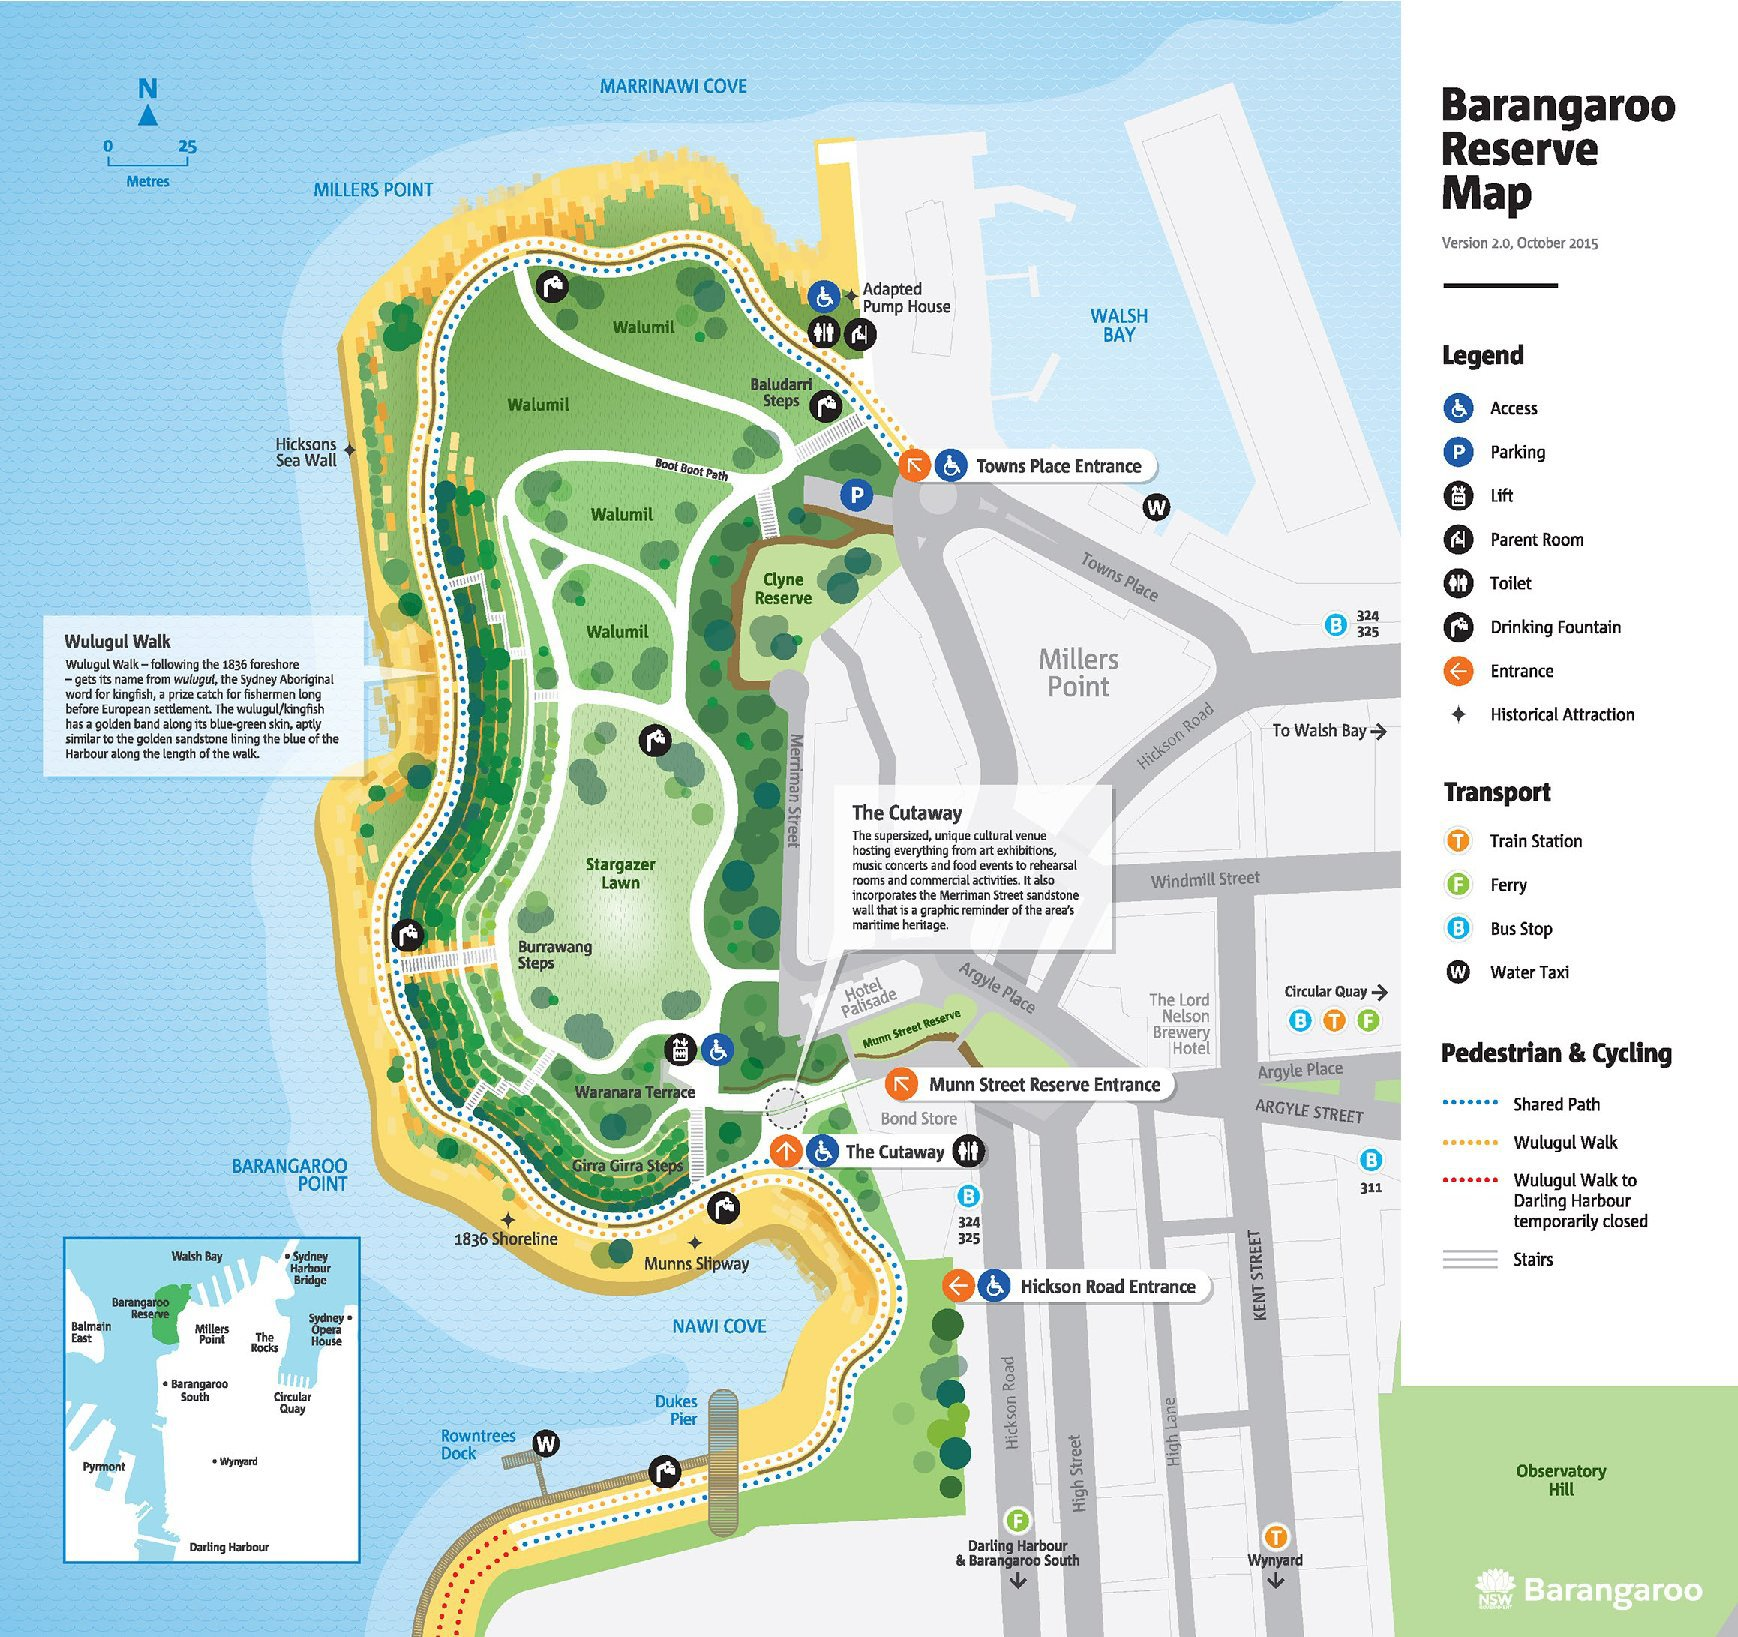 Barangaroo Treasure Hunting Map of the Sydney headland reserve